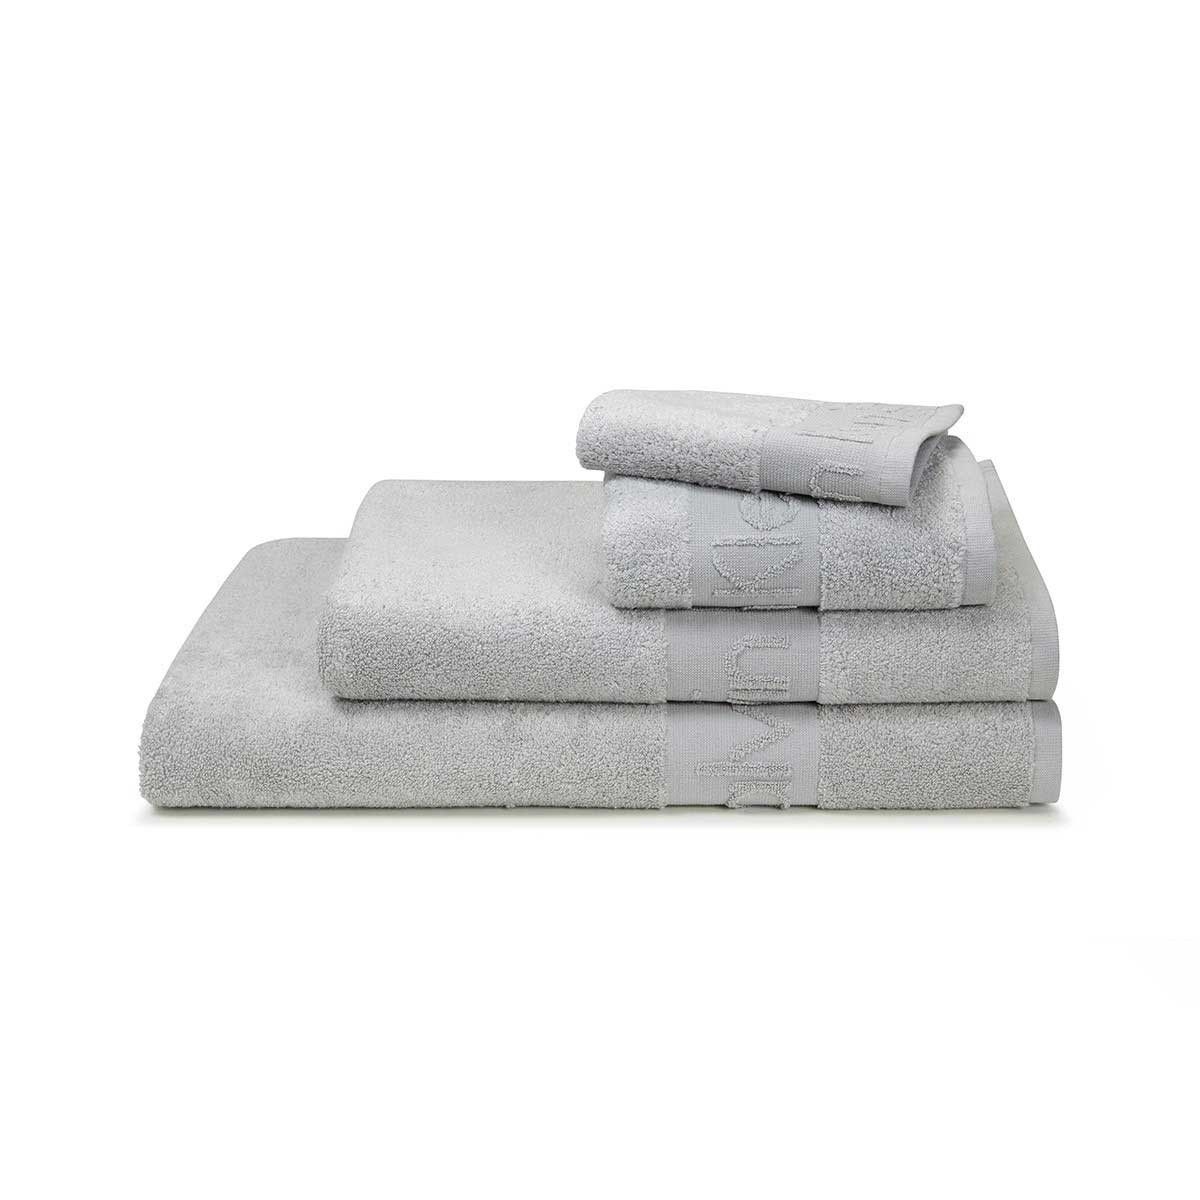 This Grey Coloured Modern Cotton Iconic Towels From Calvin Klein